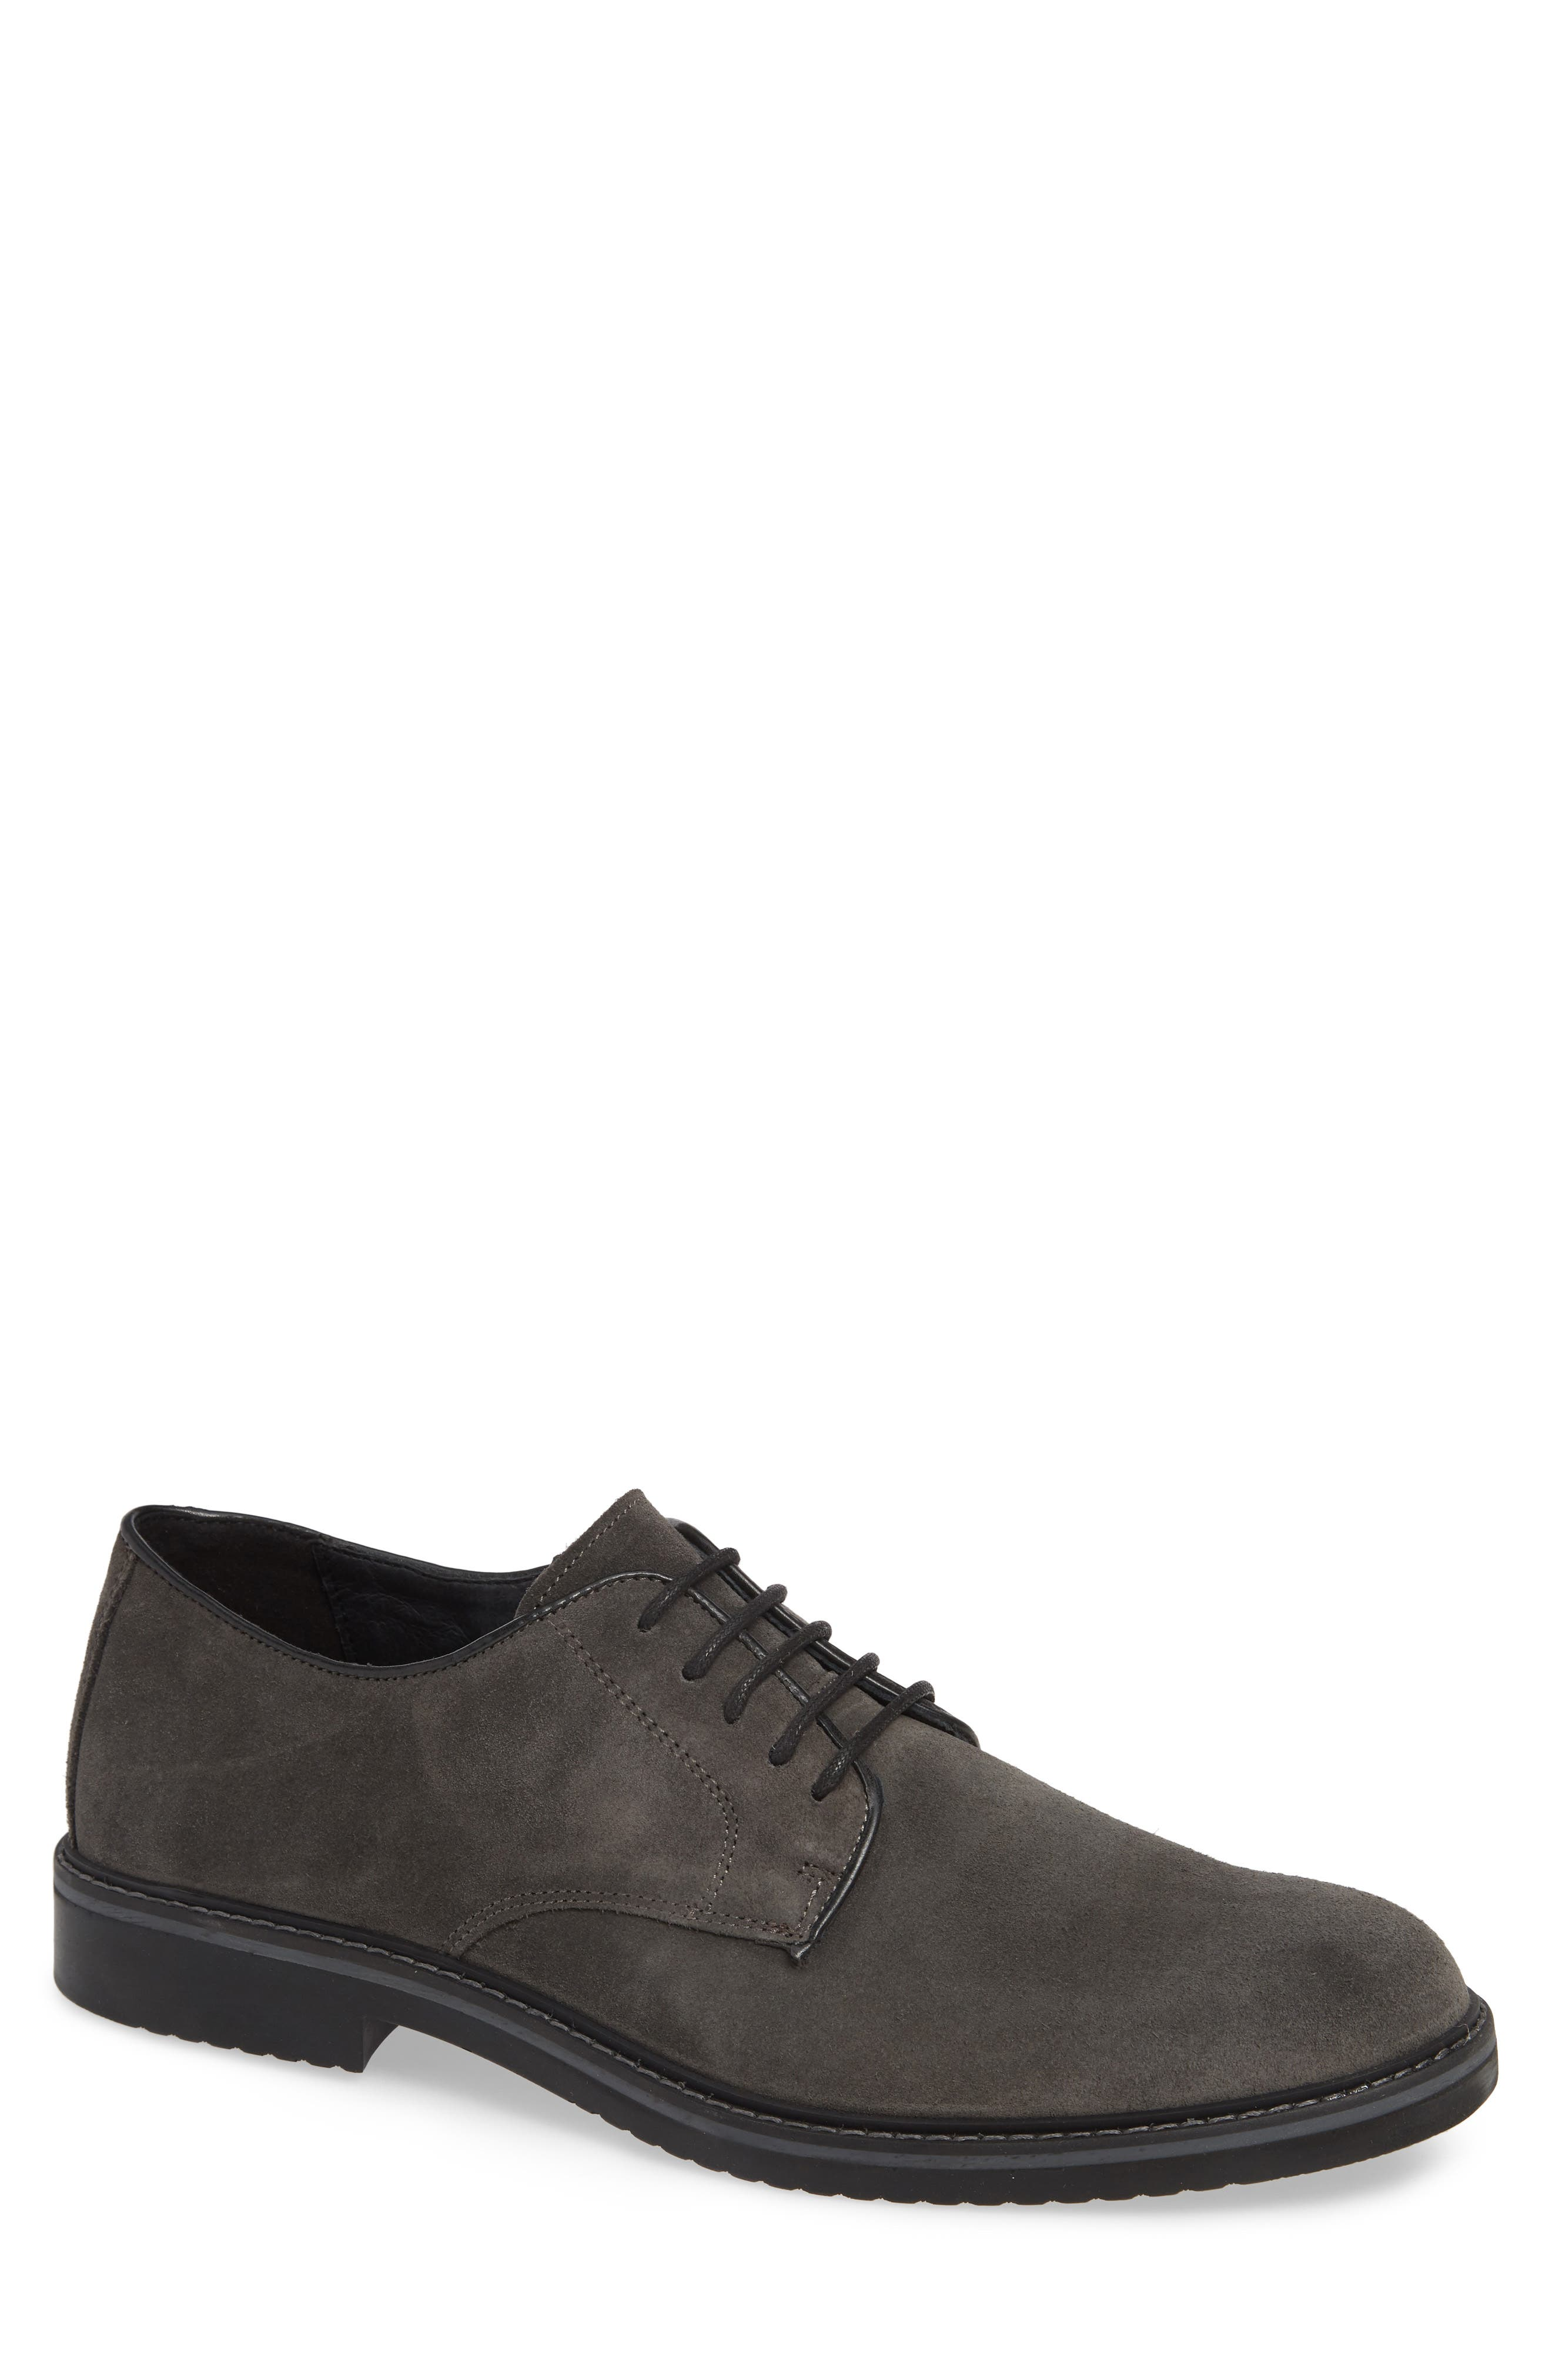 Cardiff Plain Toe Derby,                             Main thumbnail 1, color,                             CHARCOAL SUEDE